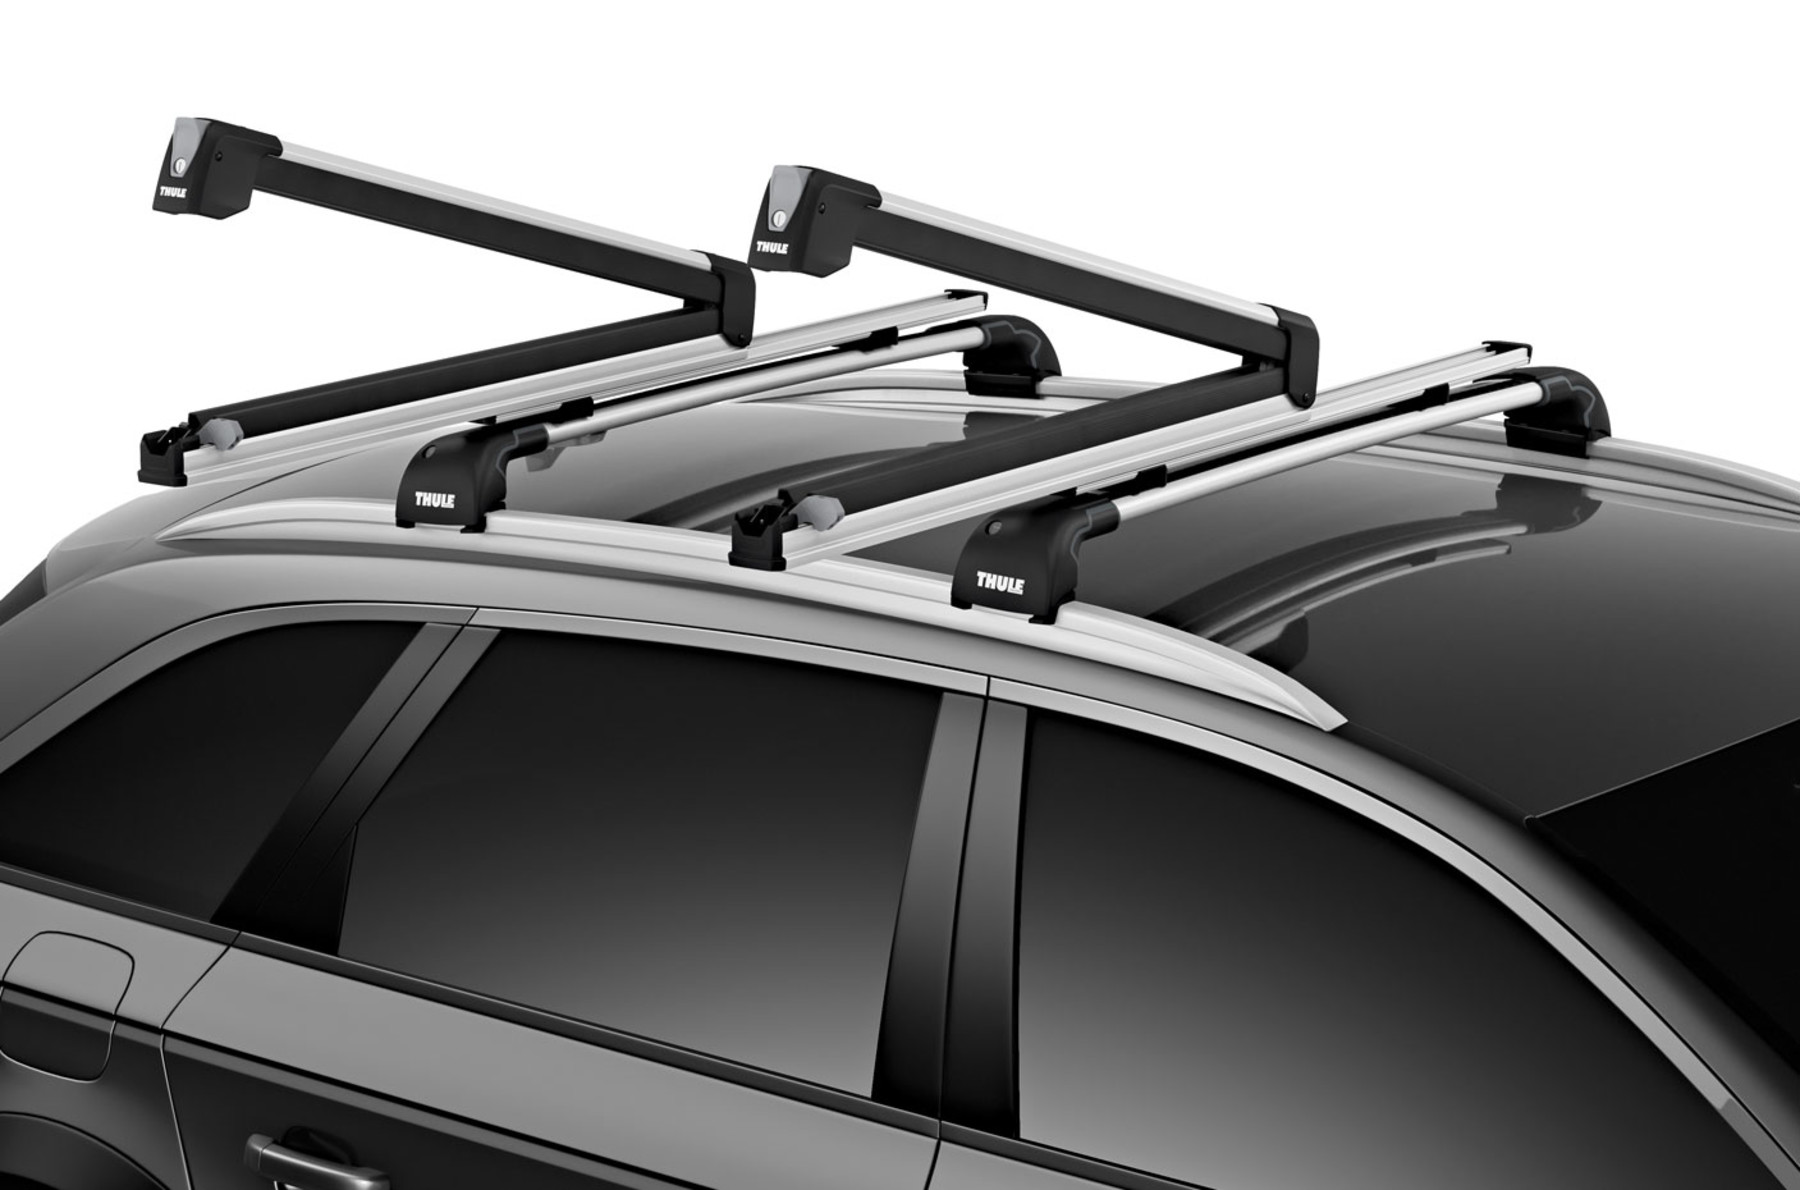 Thule Extender 739 Ski and Snowboard Carrier for 6 Skis or 4 Snowboards